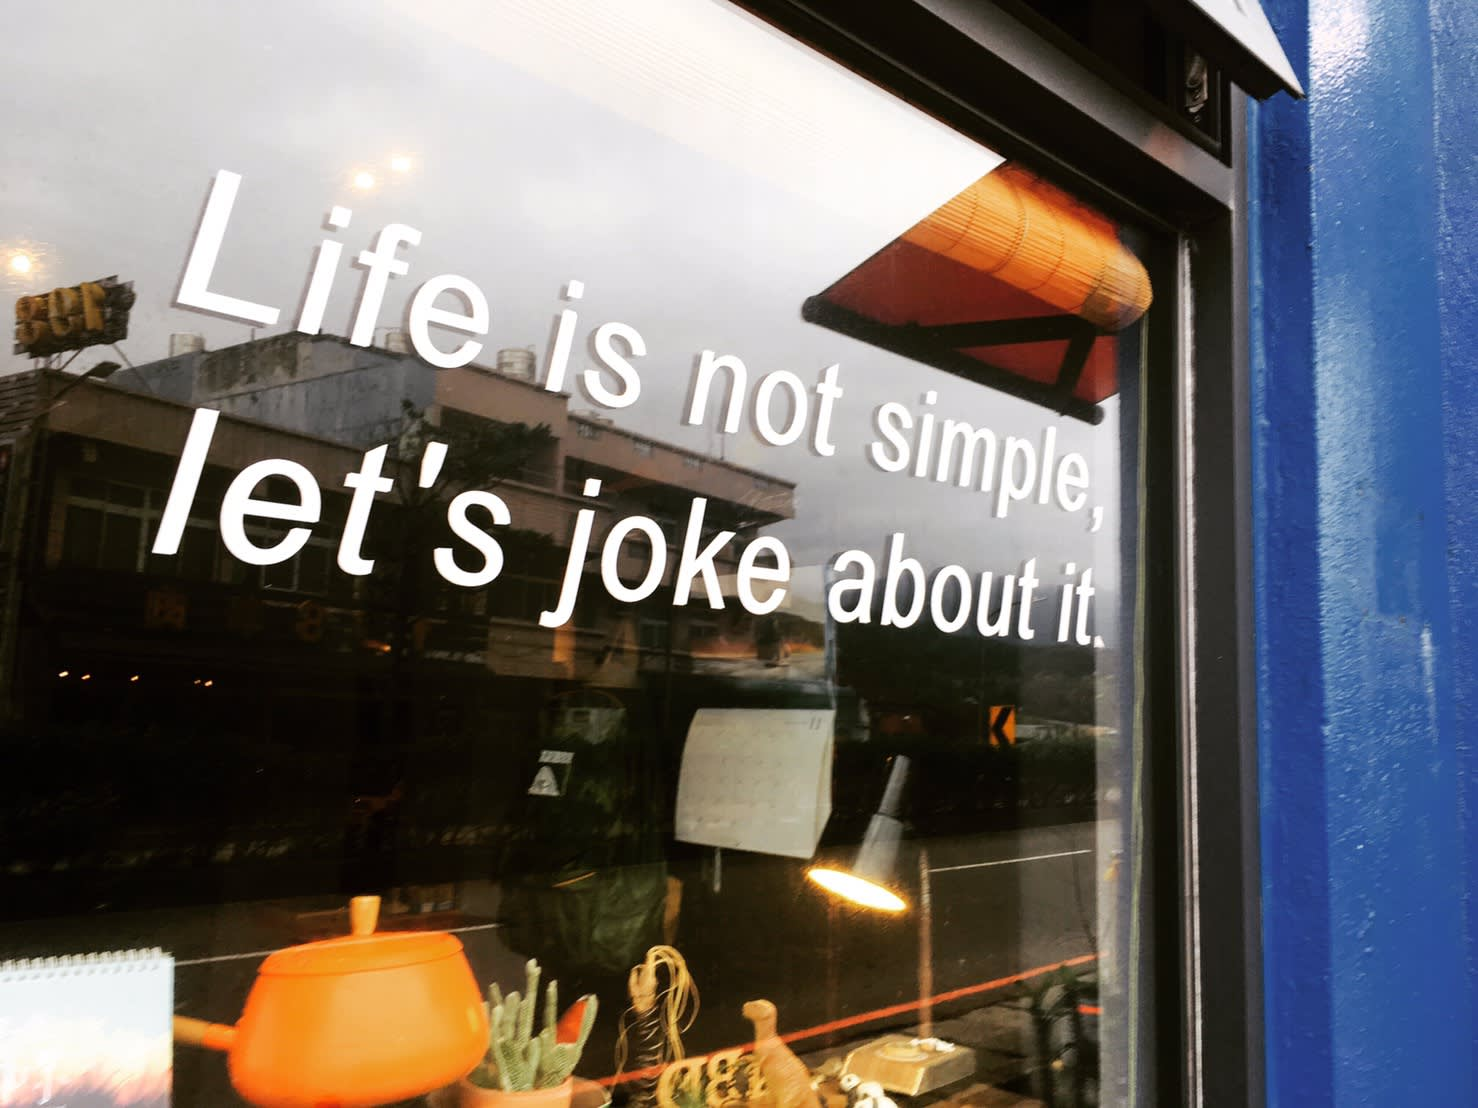 Life is not simple, let's joke about it.